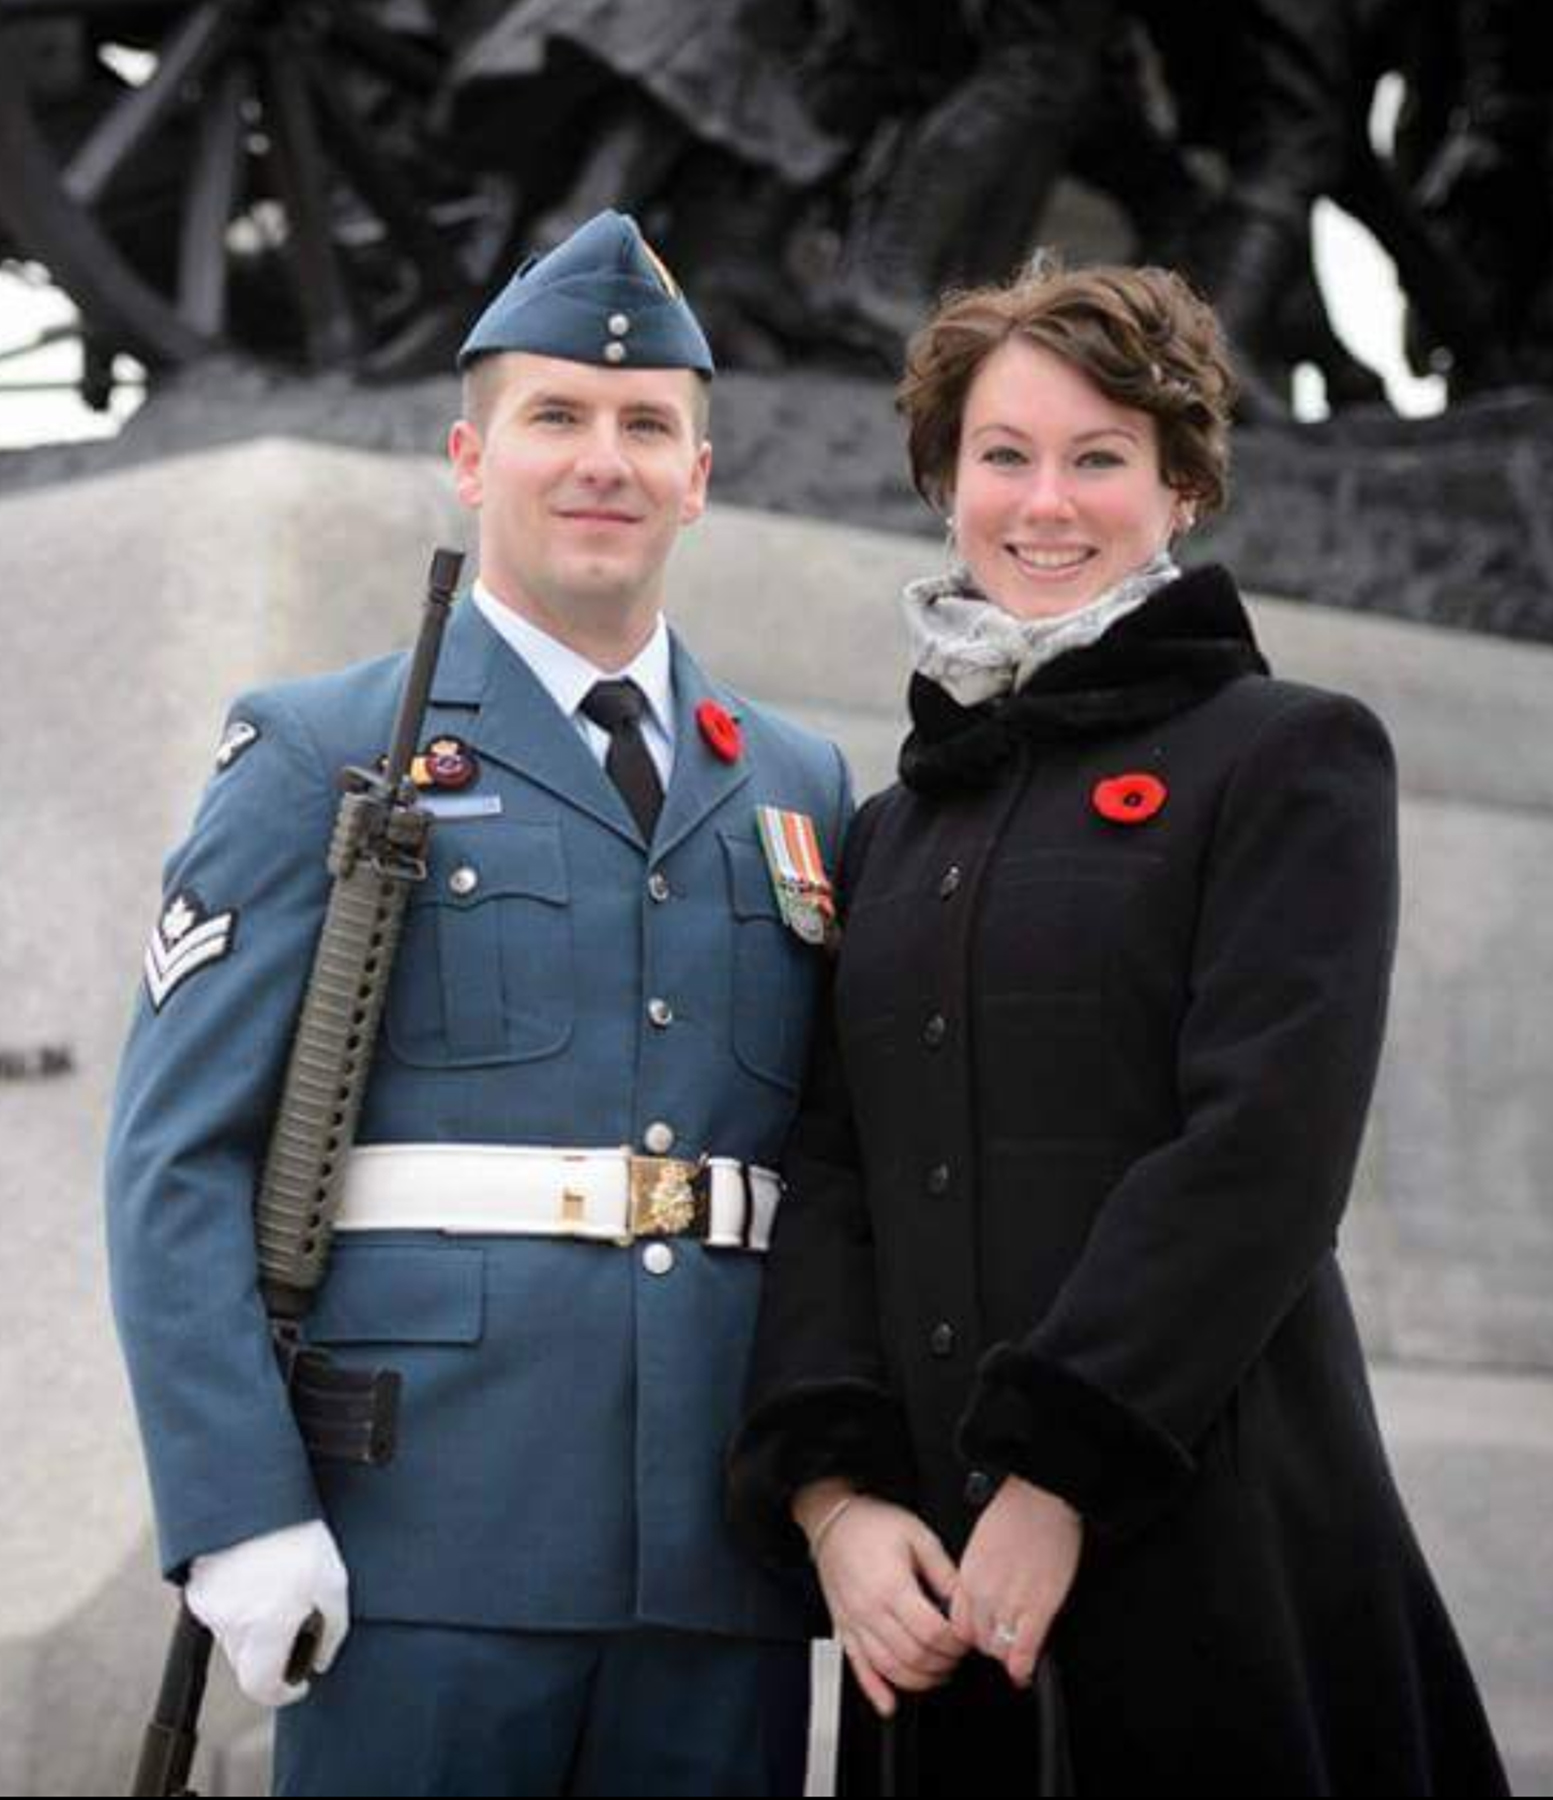 Royal Canadian Air Force Sentry Master Corporal George Arsenault and his wife, Emily, stand at the National War Memorial in Ottawa, Ontario, before the 2016 Remembrance Day Ceremony. PHOTO: Corporal Michael MacIsaac